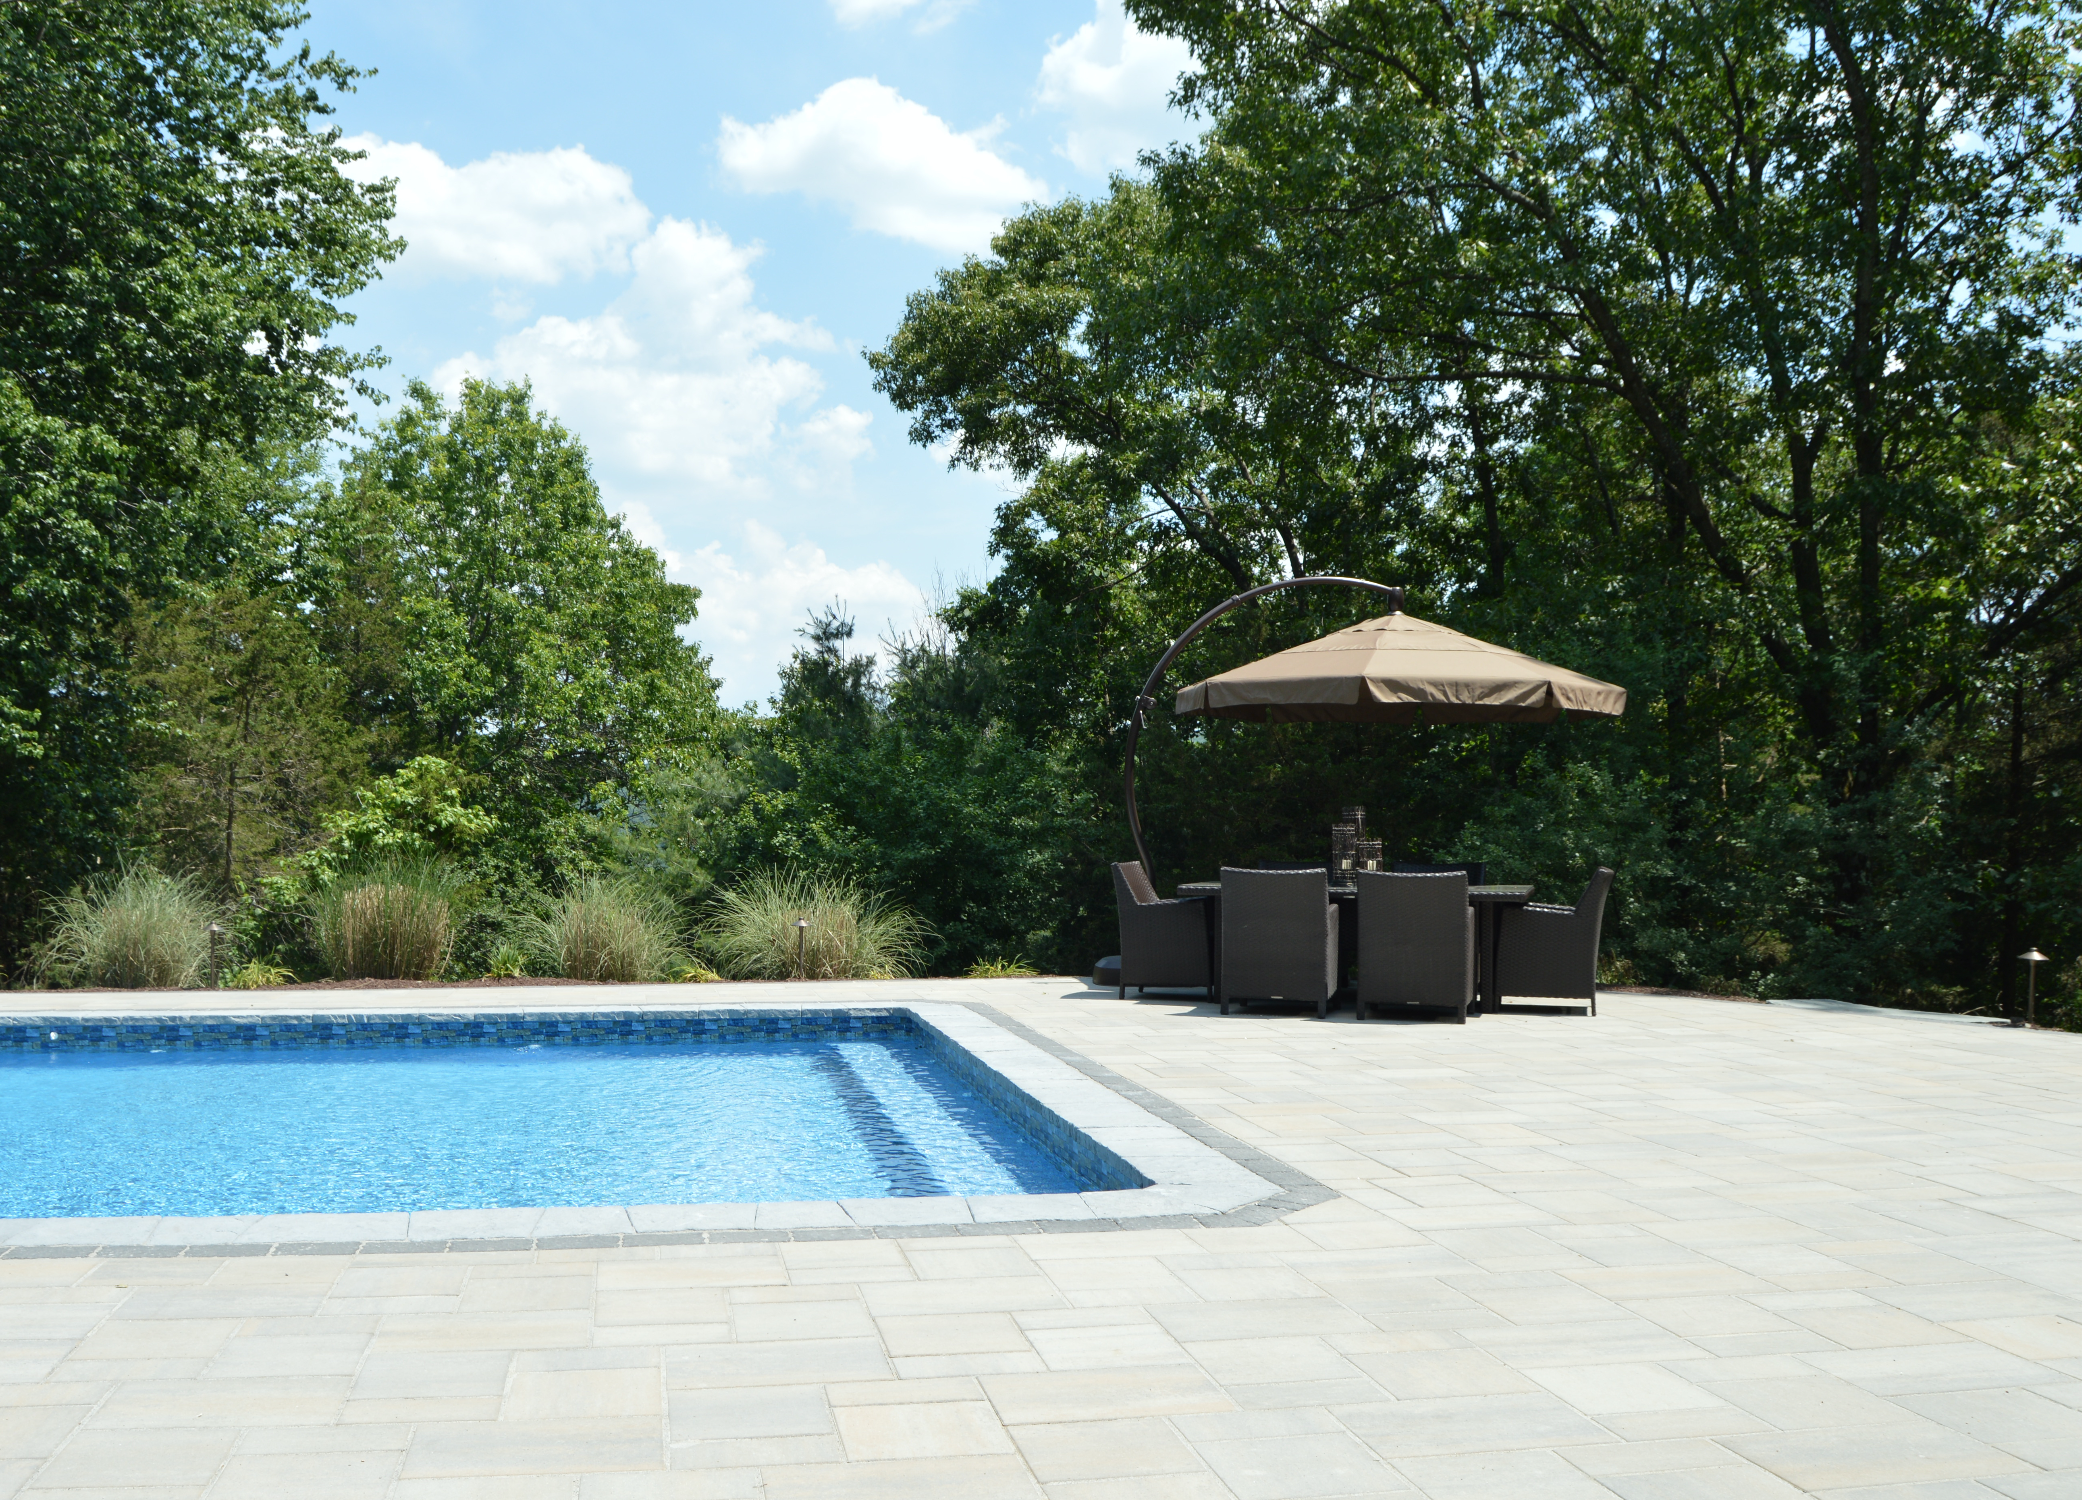 Swimming Pool Patio Retreat In Sugarloaf, NY